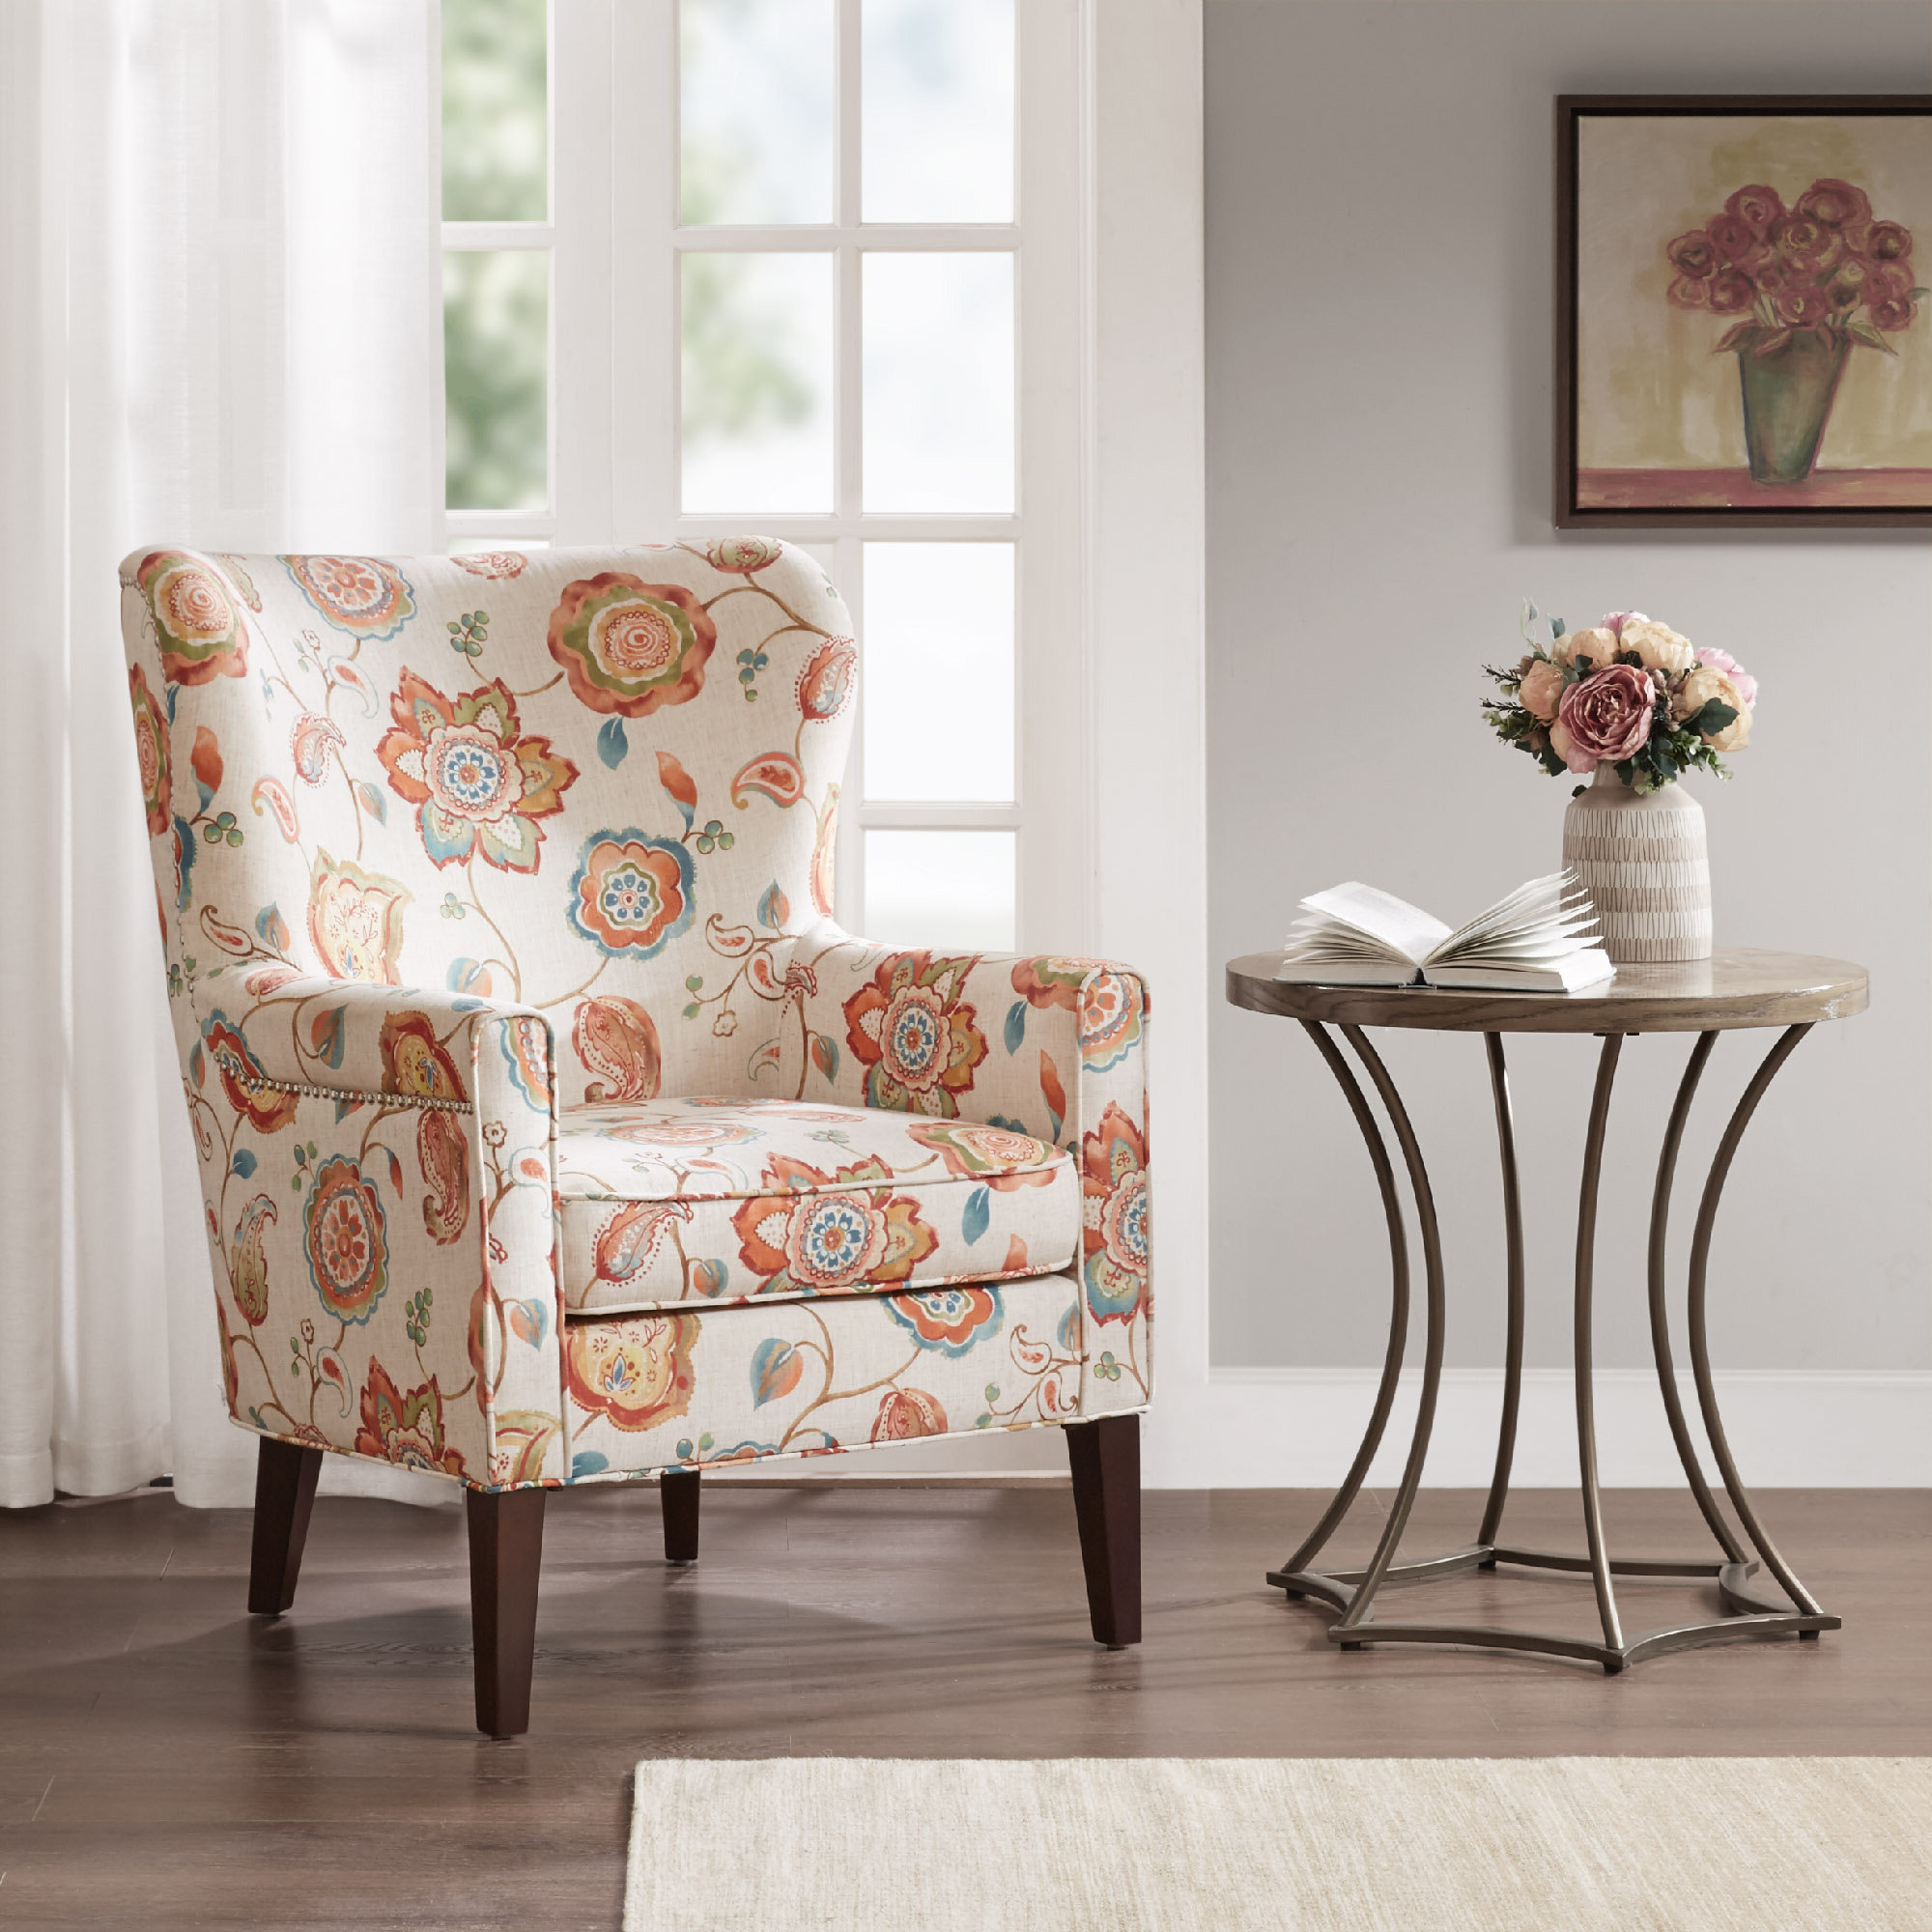 Autenberg Armchairs Within Best And Newest Sparta Armchair (View 9 of 20)